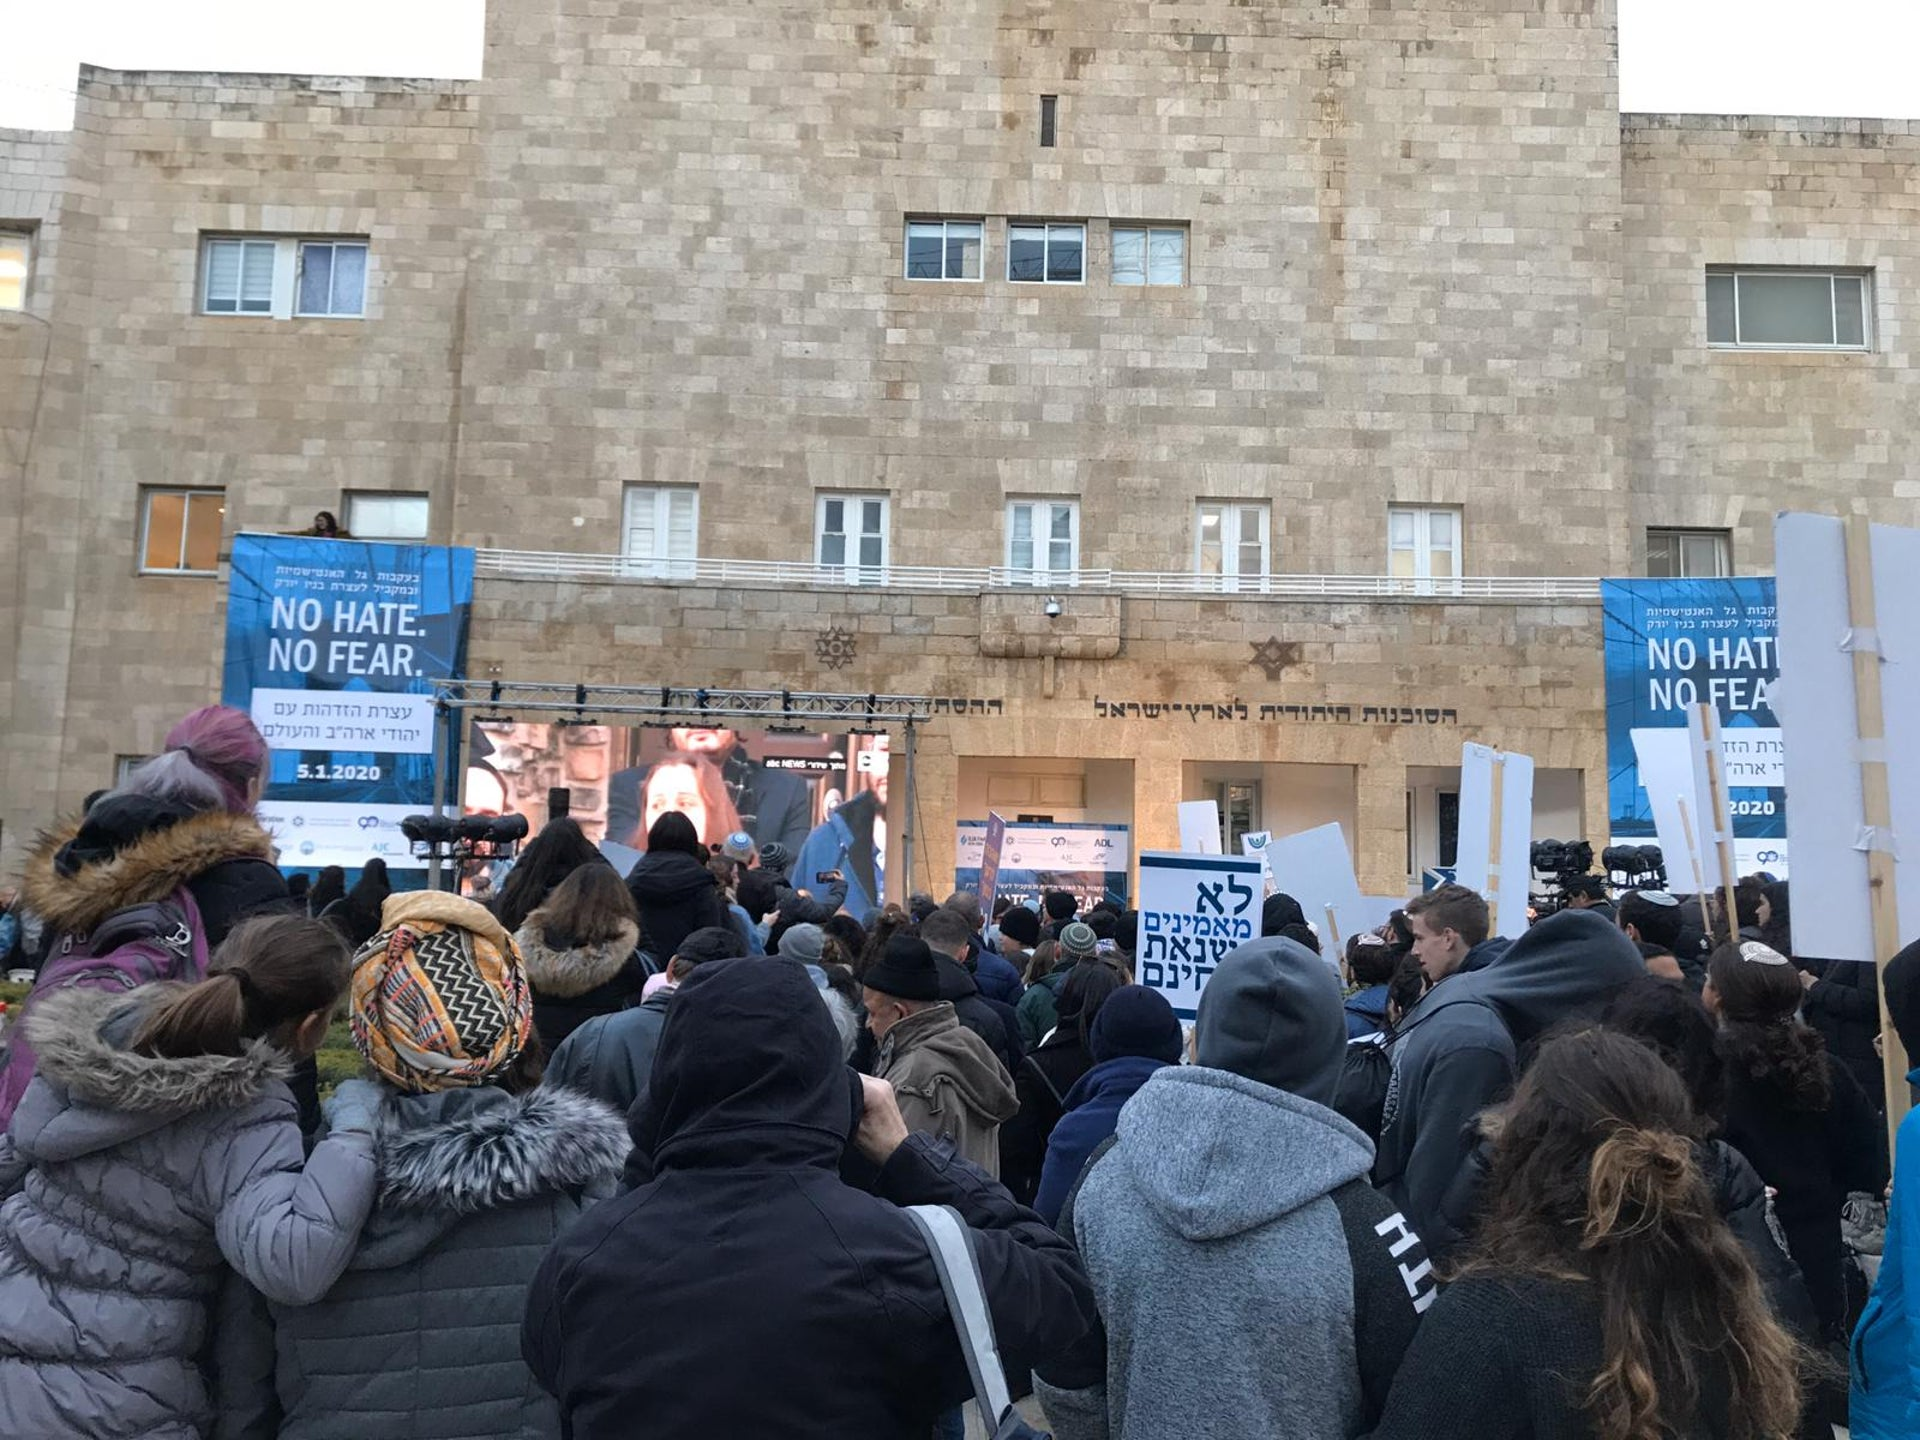 Demonstration in solidarity with march against anti-Semitism outside the Jewish Agency building in Jerusalem on January 5, 2019.